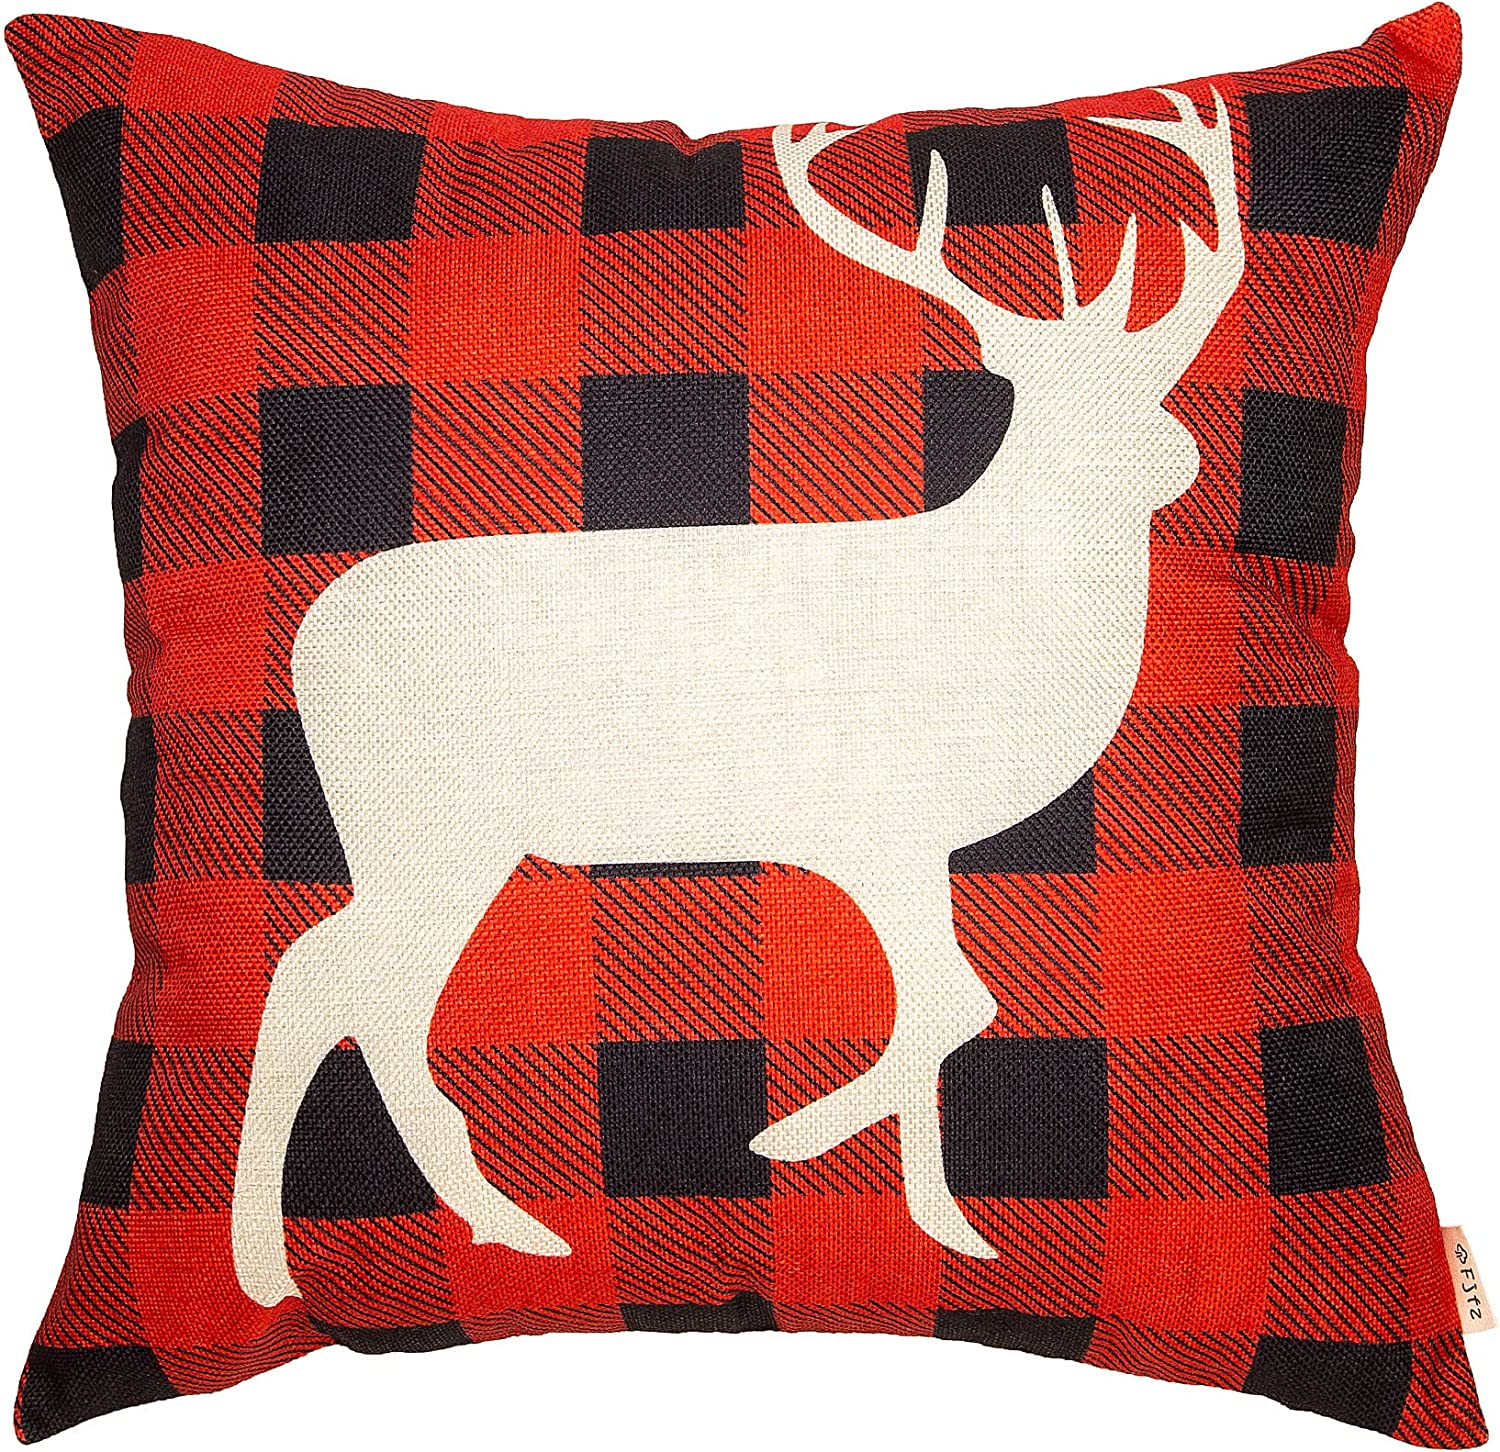 Fjfz Rustic Christmas Décor Winter Deer Scottish Buffalo Checkers Plaid Reindeer Farmhouse Decoration Gift Cotton Linen Home Decorative Throw Pillow Case Cushion Cover for Sofa Couch, 18